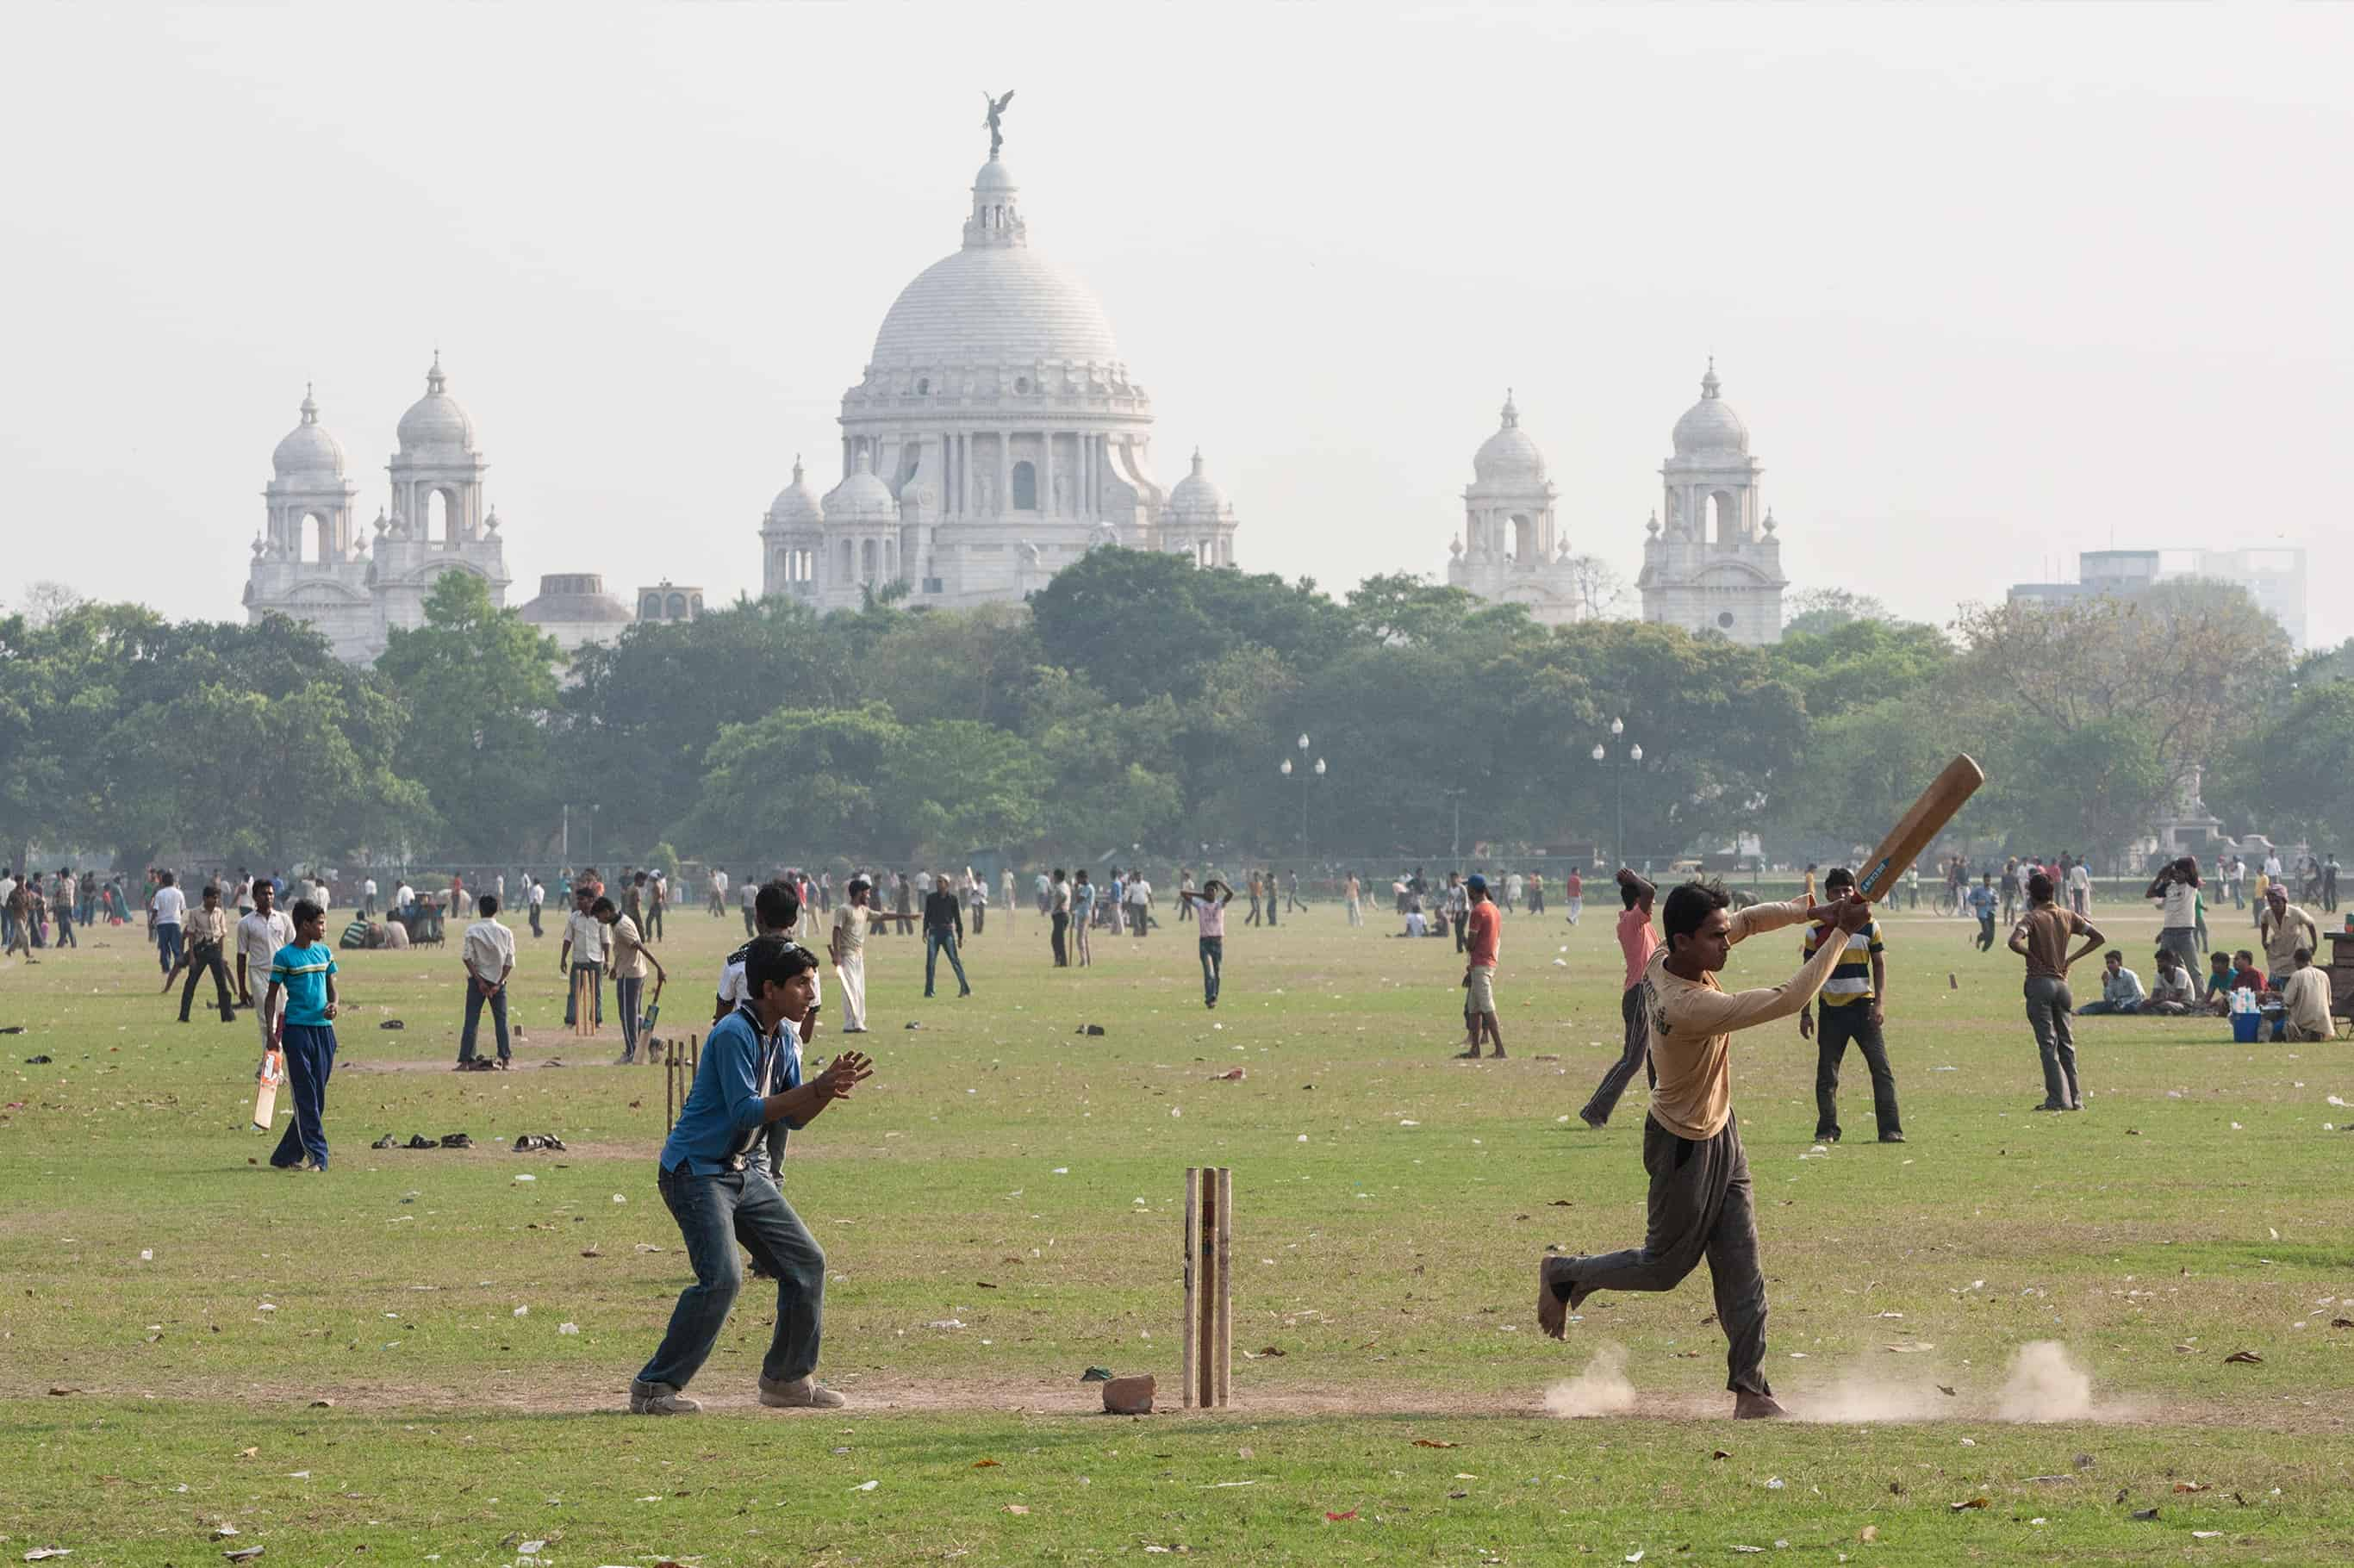 Playing cricket in Kolkata on the Maidan with the Victoria Memorial in the background